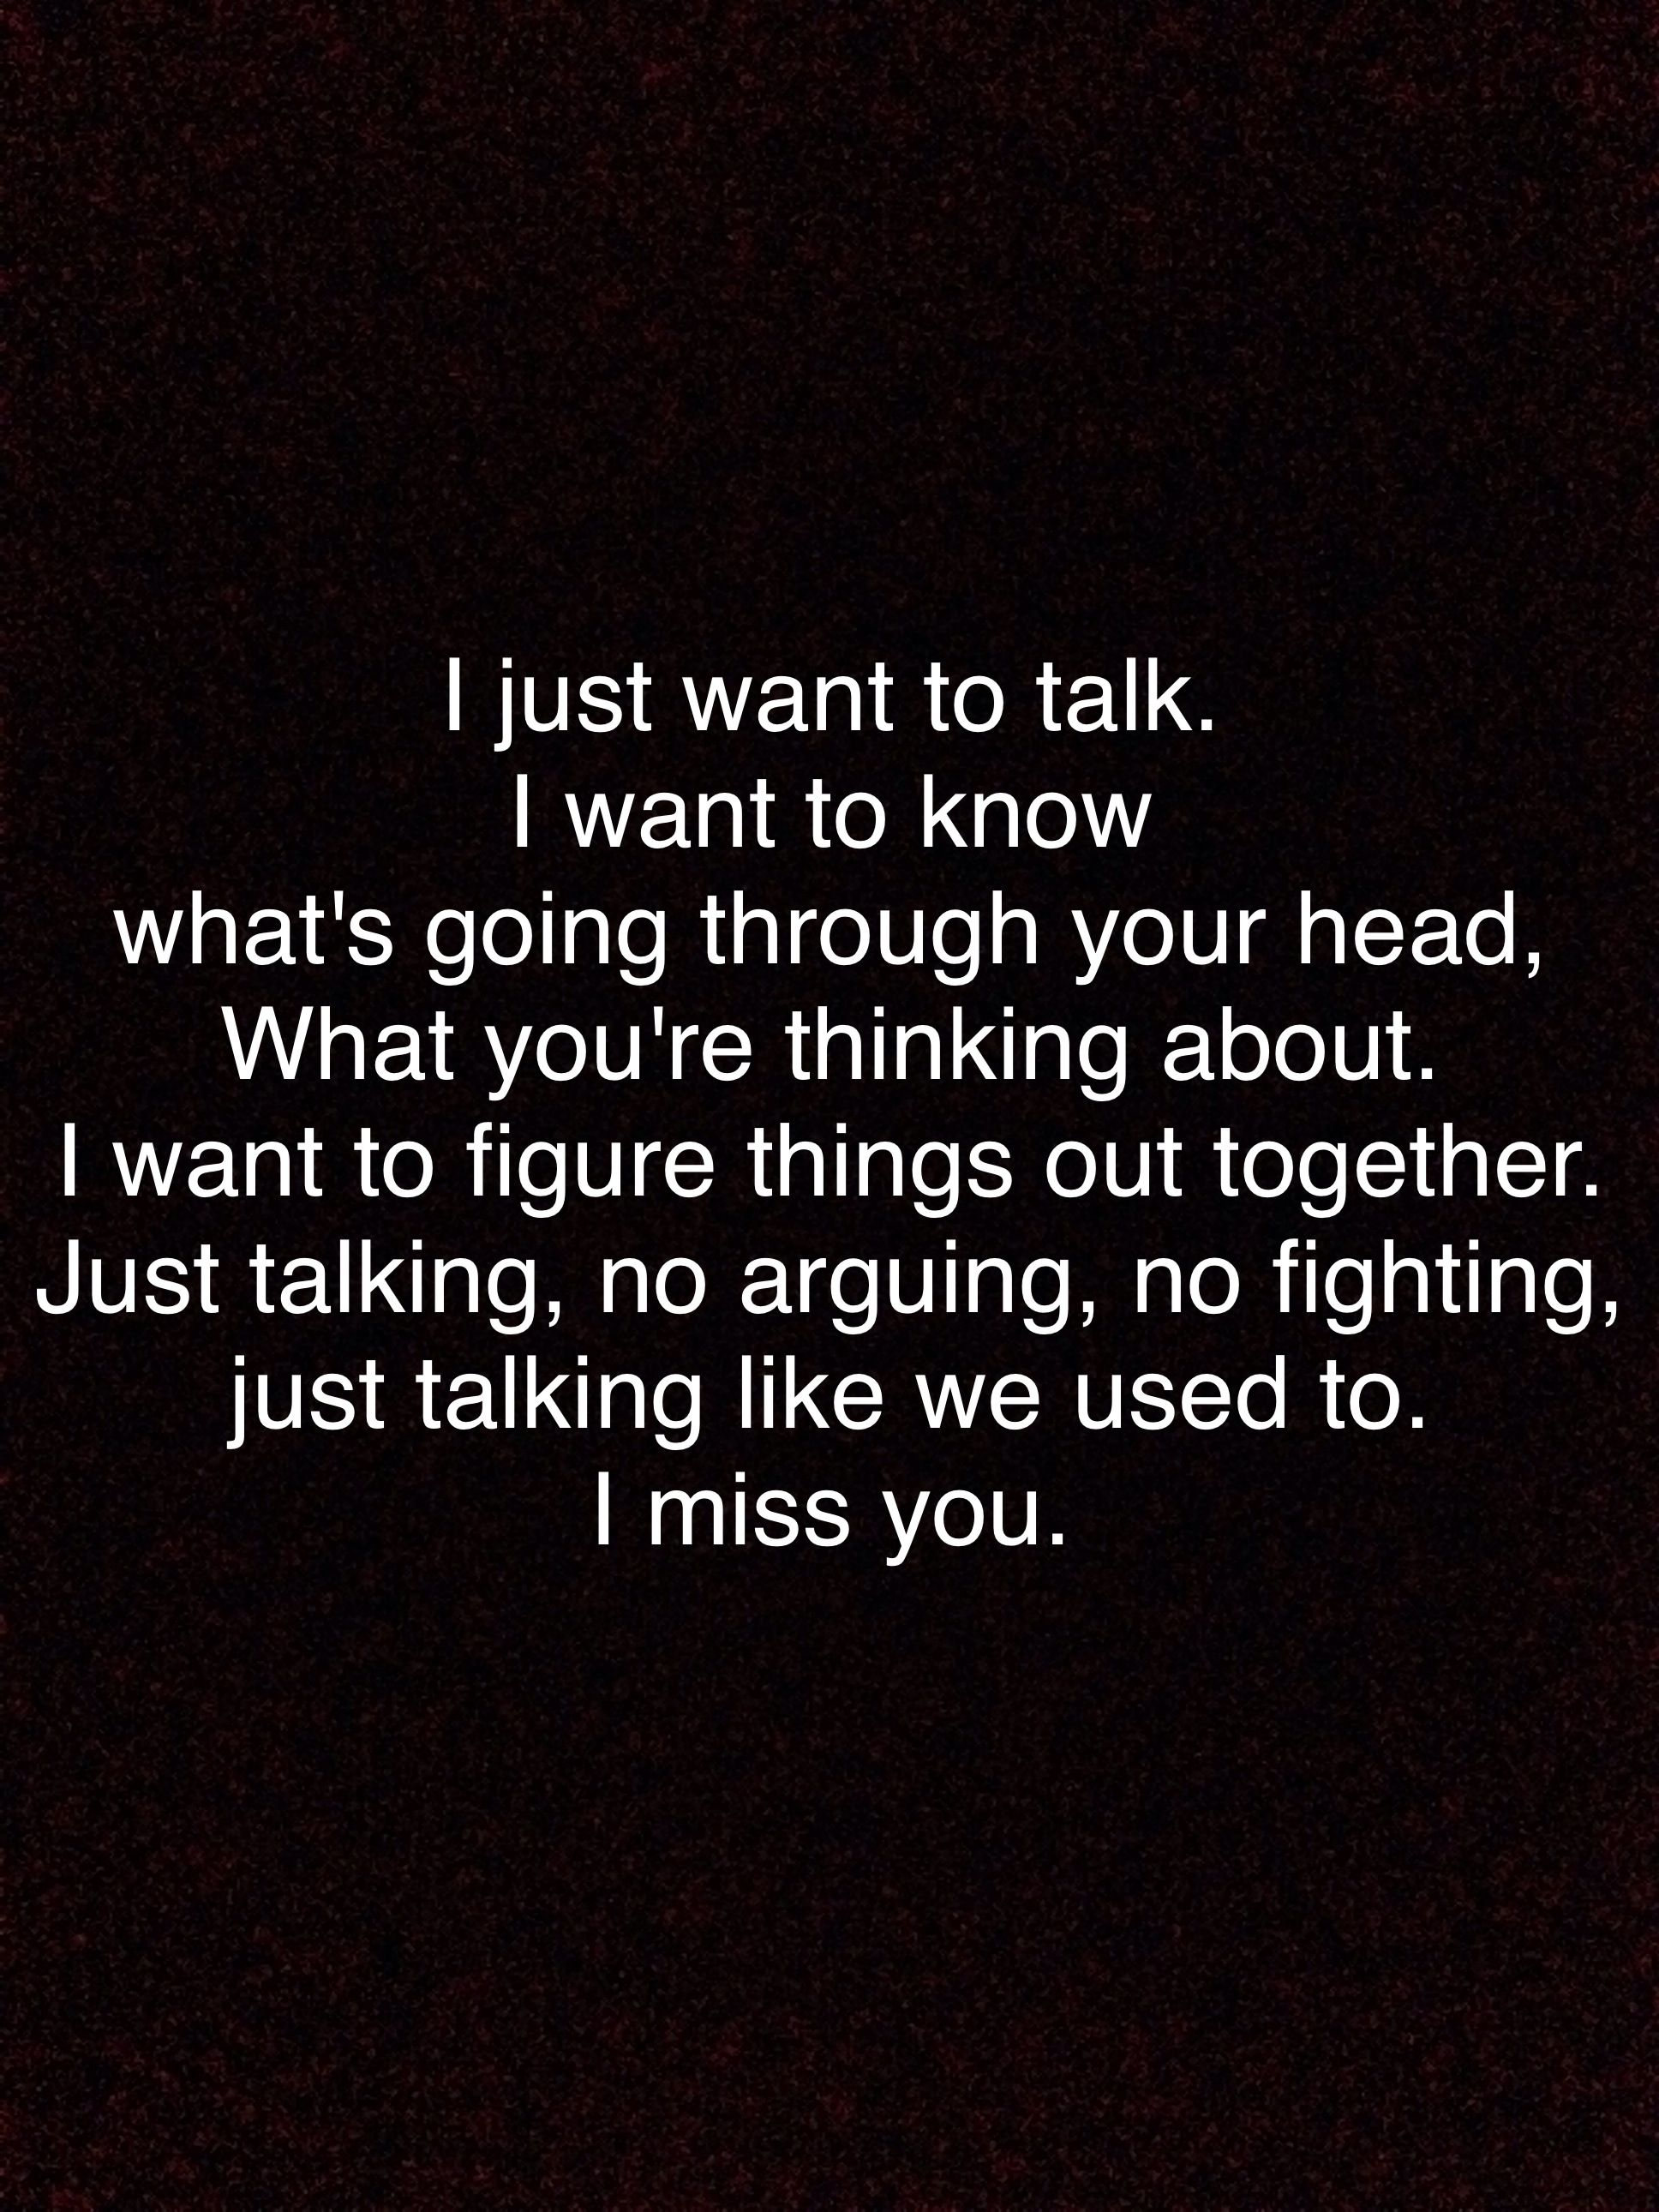 I Know You Need Space But I Really Miss You Real Quotes Space Quotes Heartfelt Quotes